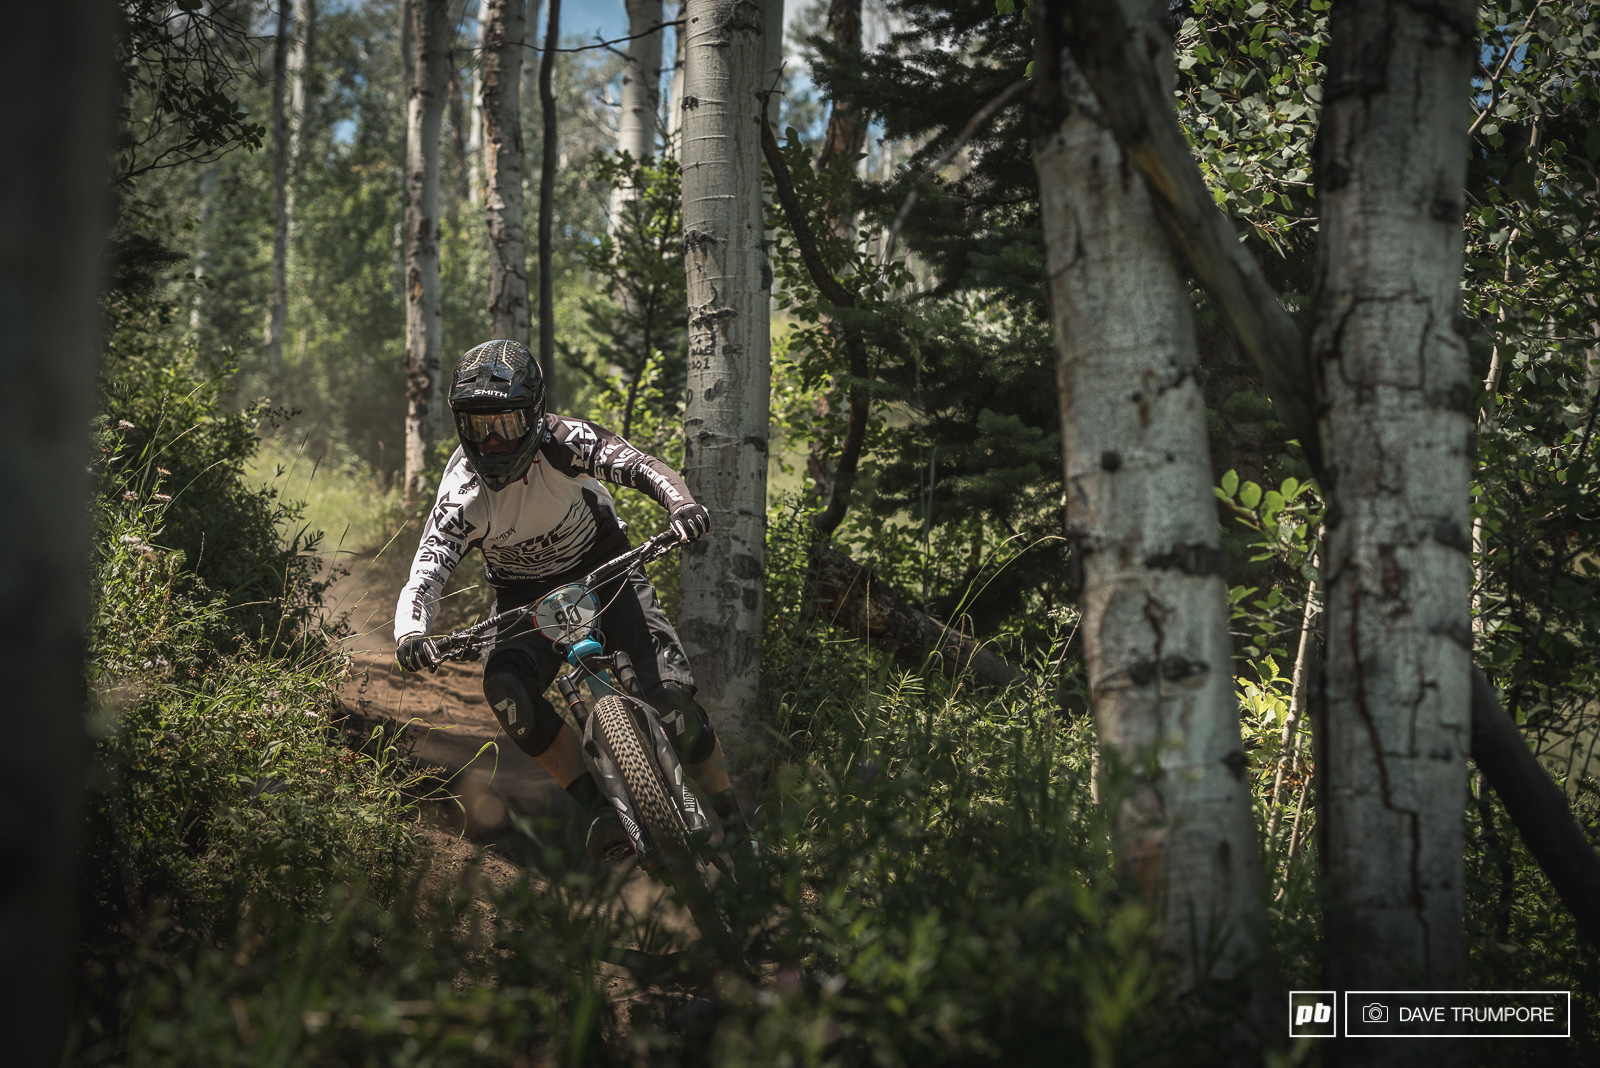 Local Colorado shredder and former DH racer Chris Boice has been looking quick as well out there. With much of the series abroad so far this year this will be the first time we see a large influx of American riders mixing it up with the EWS regulars.